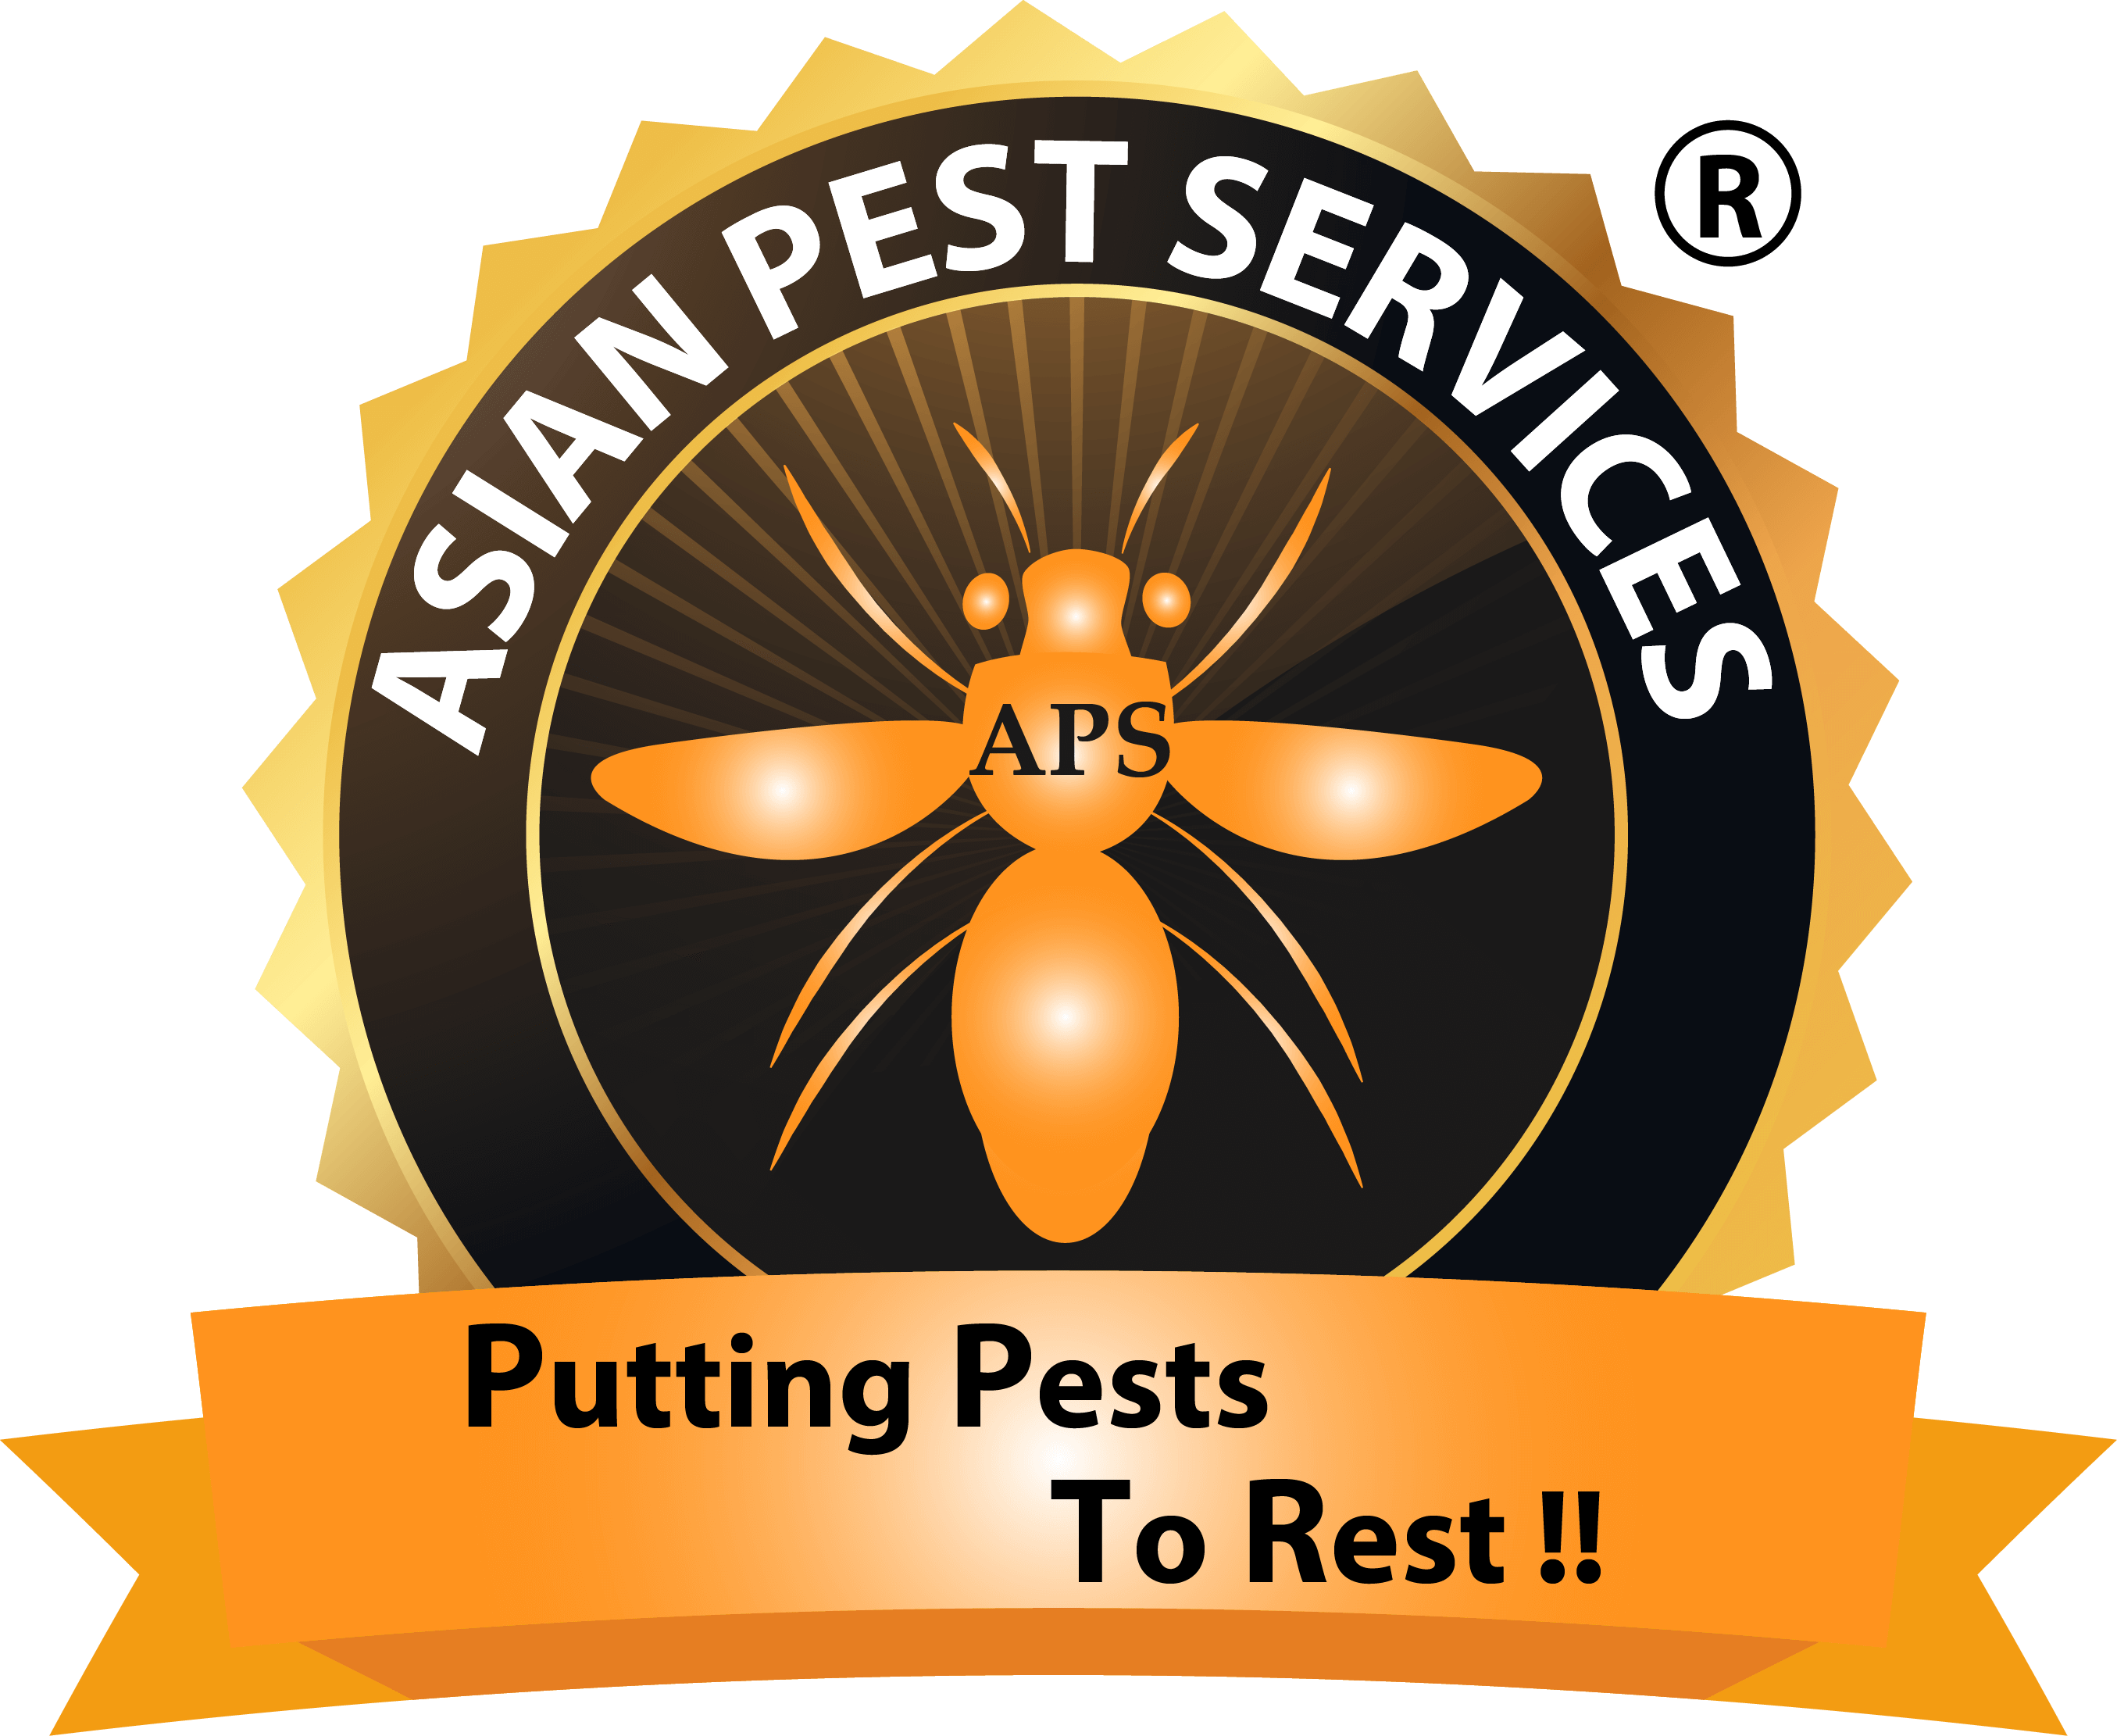 AsianPestServices